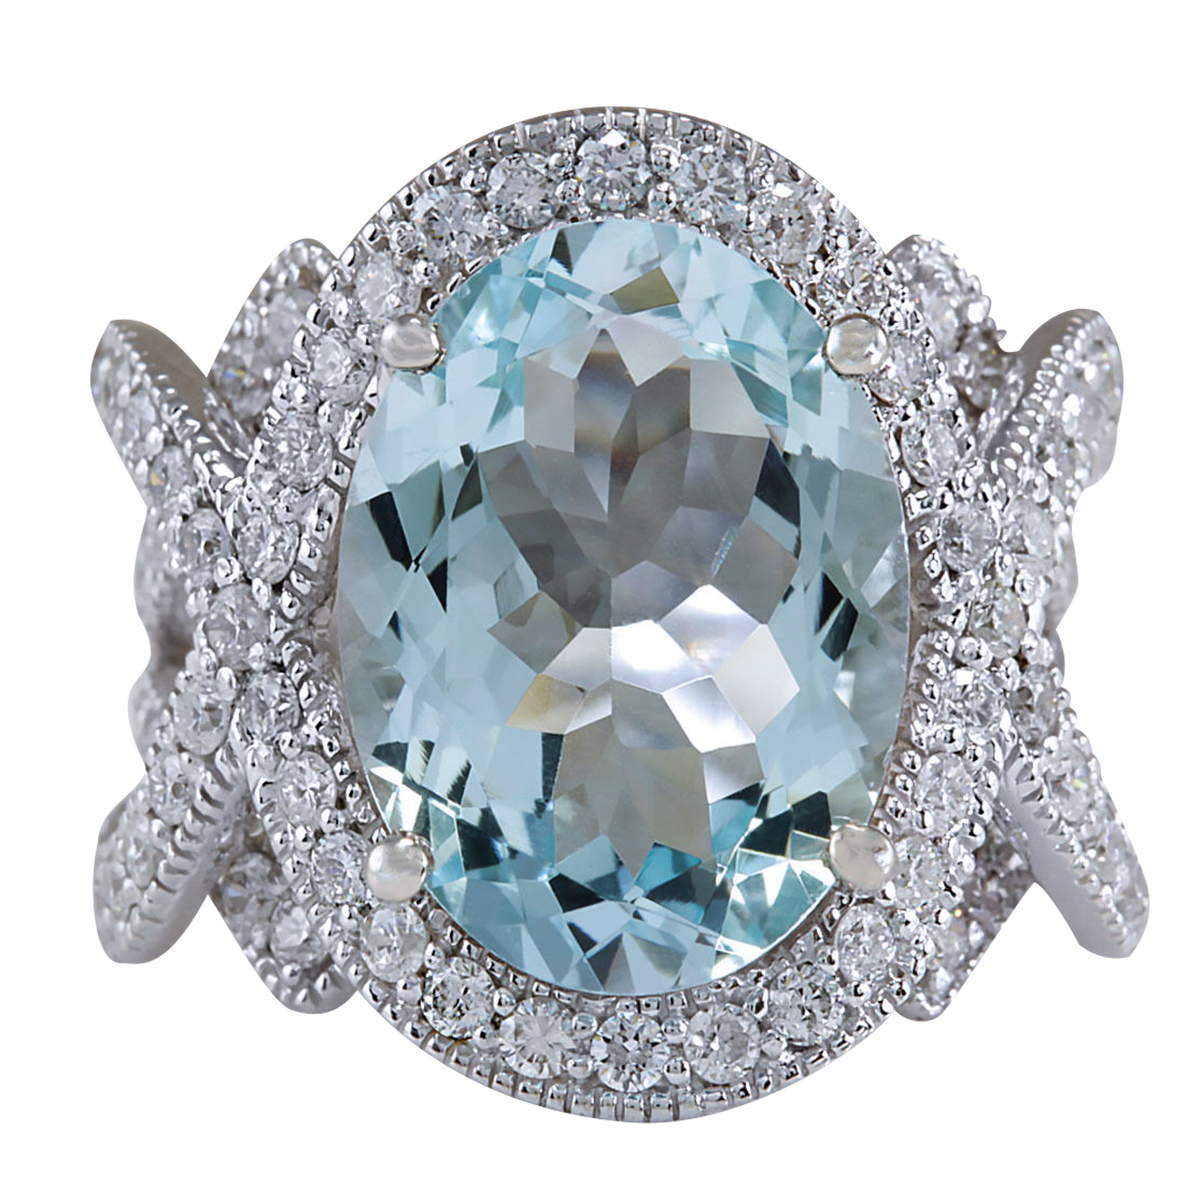 8.91CTW Natural Aquamarine And Diamond Ring In 14K Solid White Gold